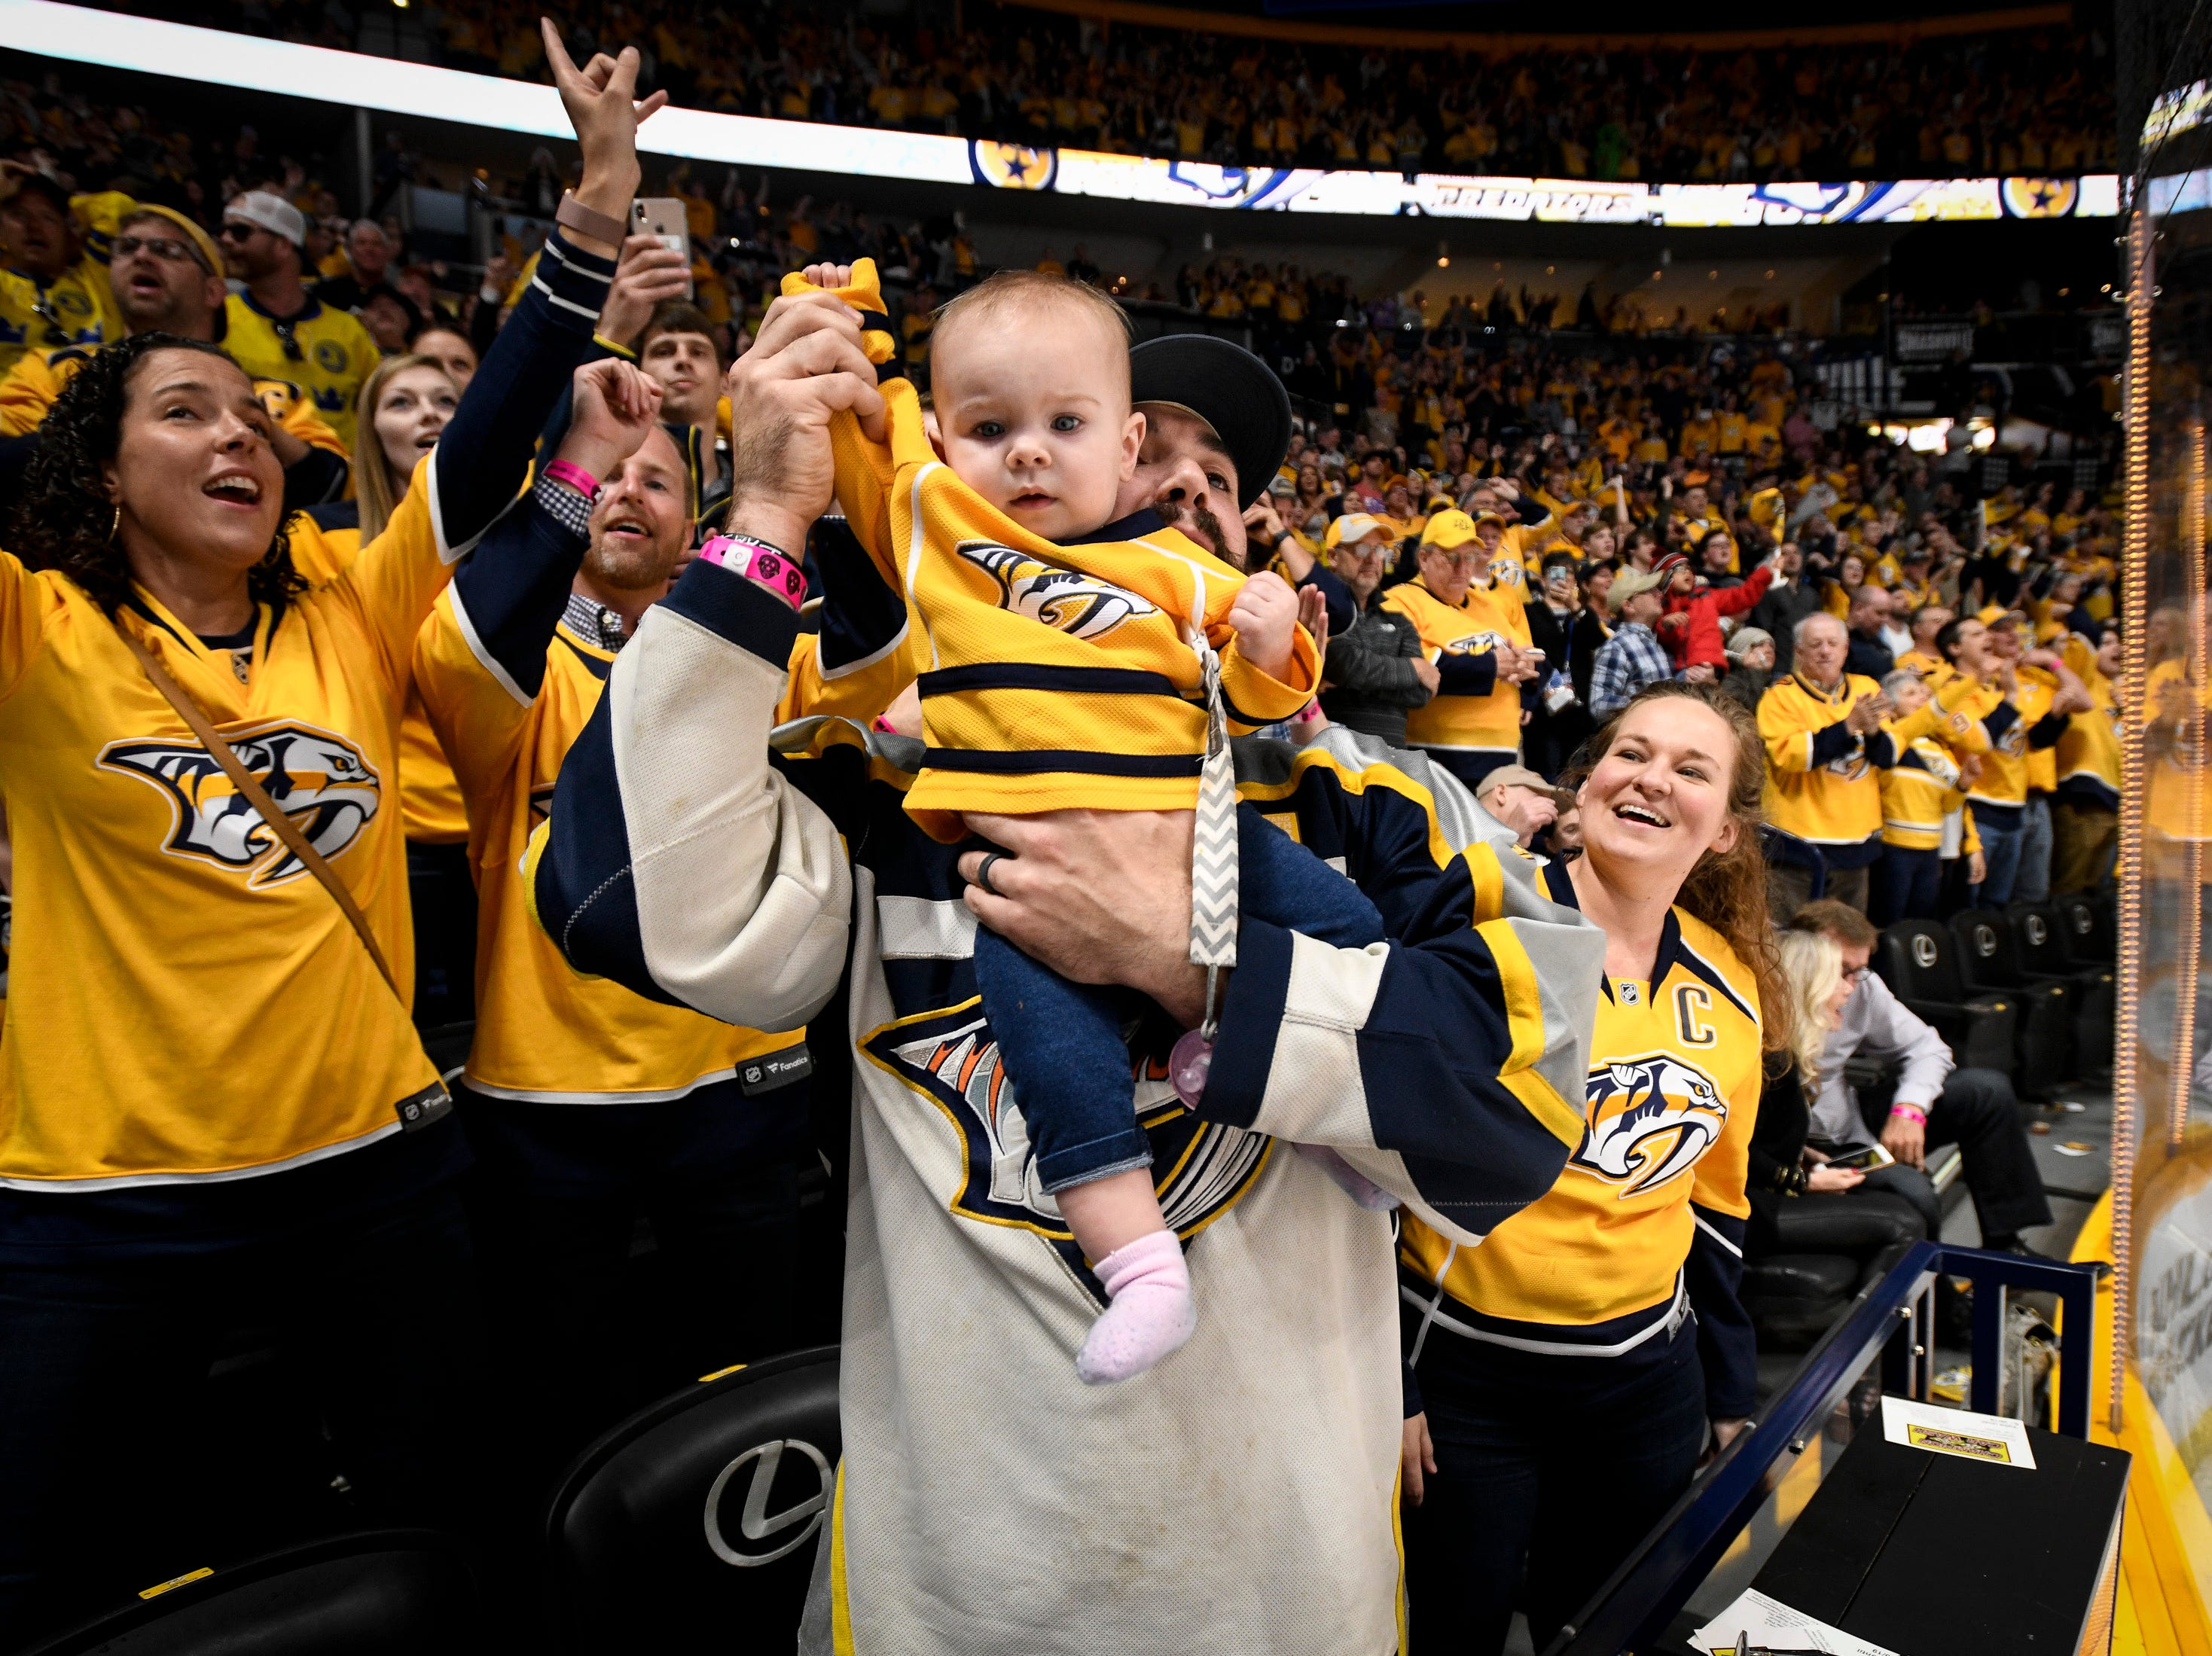 Jared Prall holds up his 9-month-old daughter Preslee Prall after Nashville Predators left wing Filip Forsberg scored against the Chicago Blackhawks during the second period at Bridgestone Arena in Nashville, Tenn., Saturday, April 6, 2019.